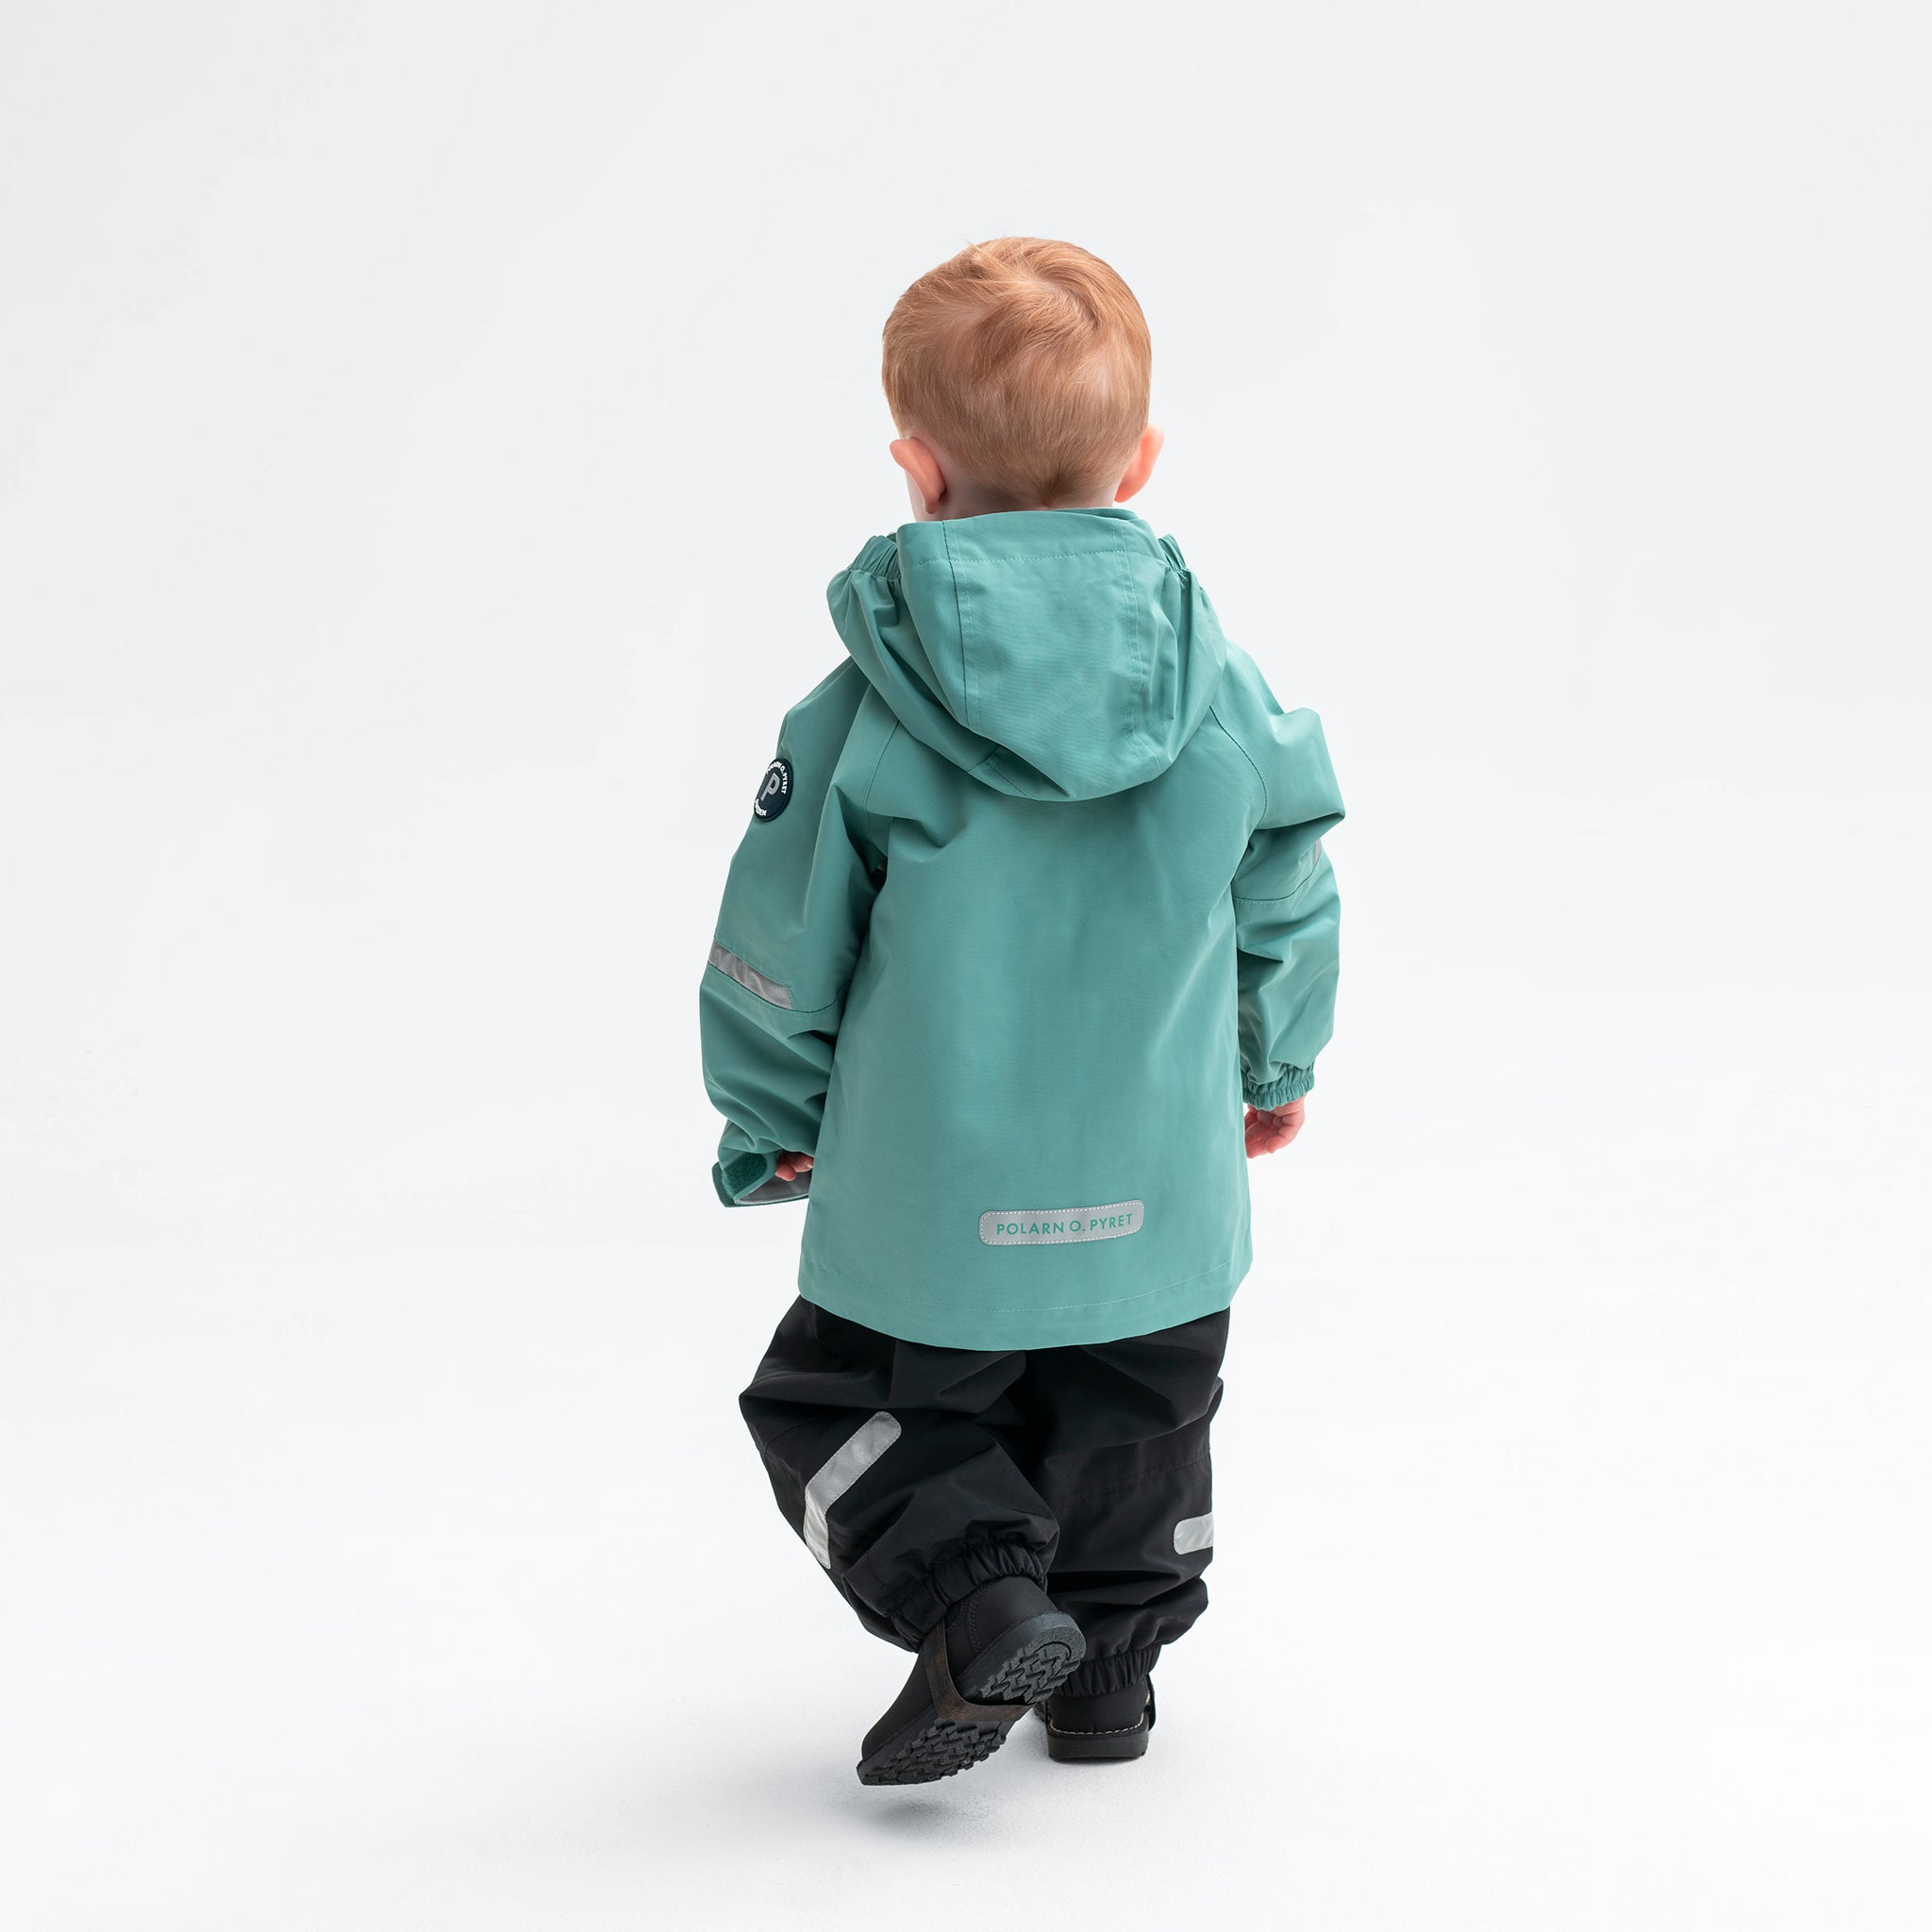 A little boy wearing a green kids waterproof shell jacket with hood, made from eco-friendly water repellent technology.